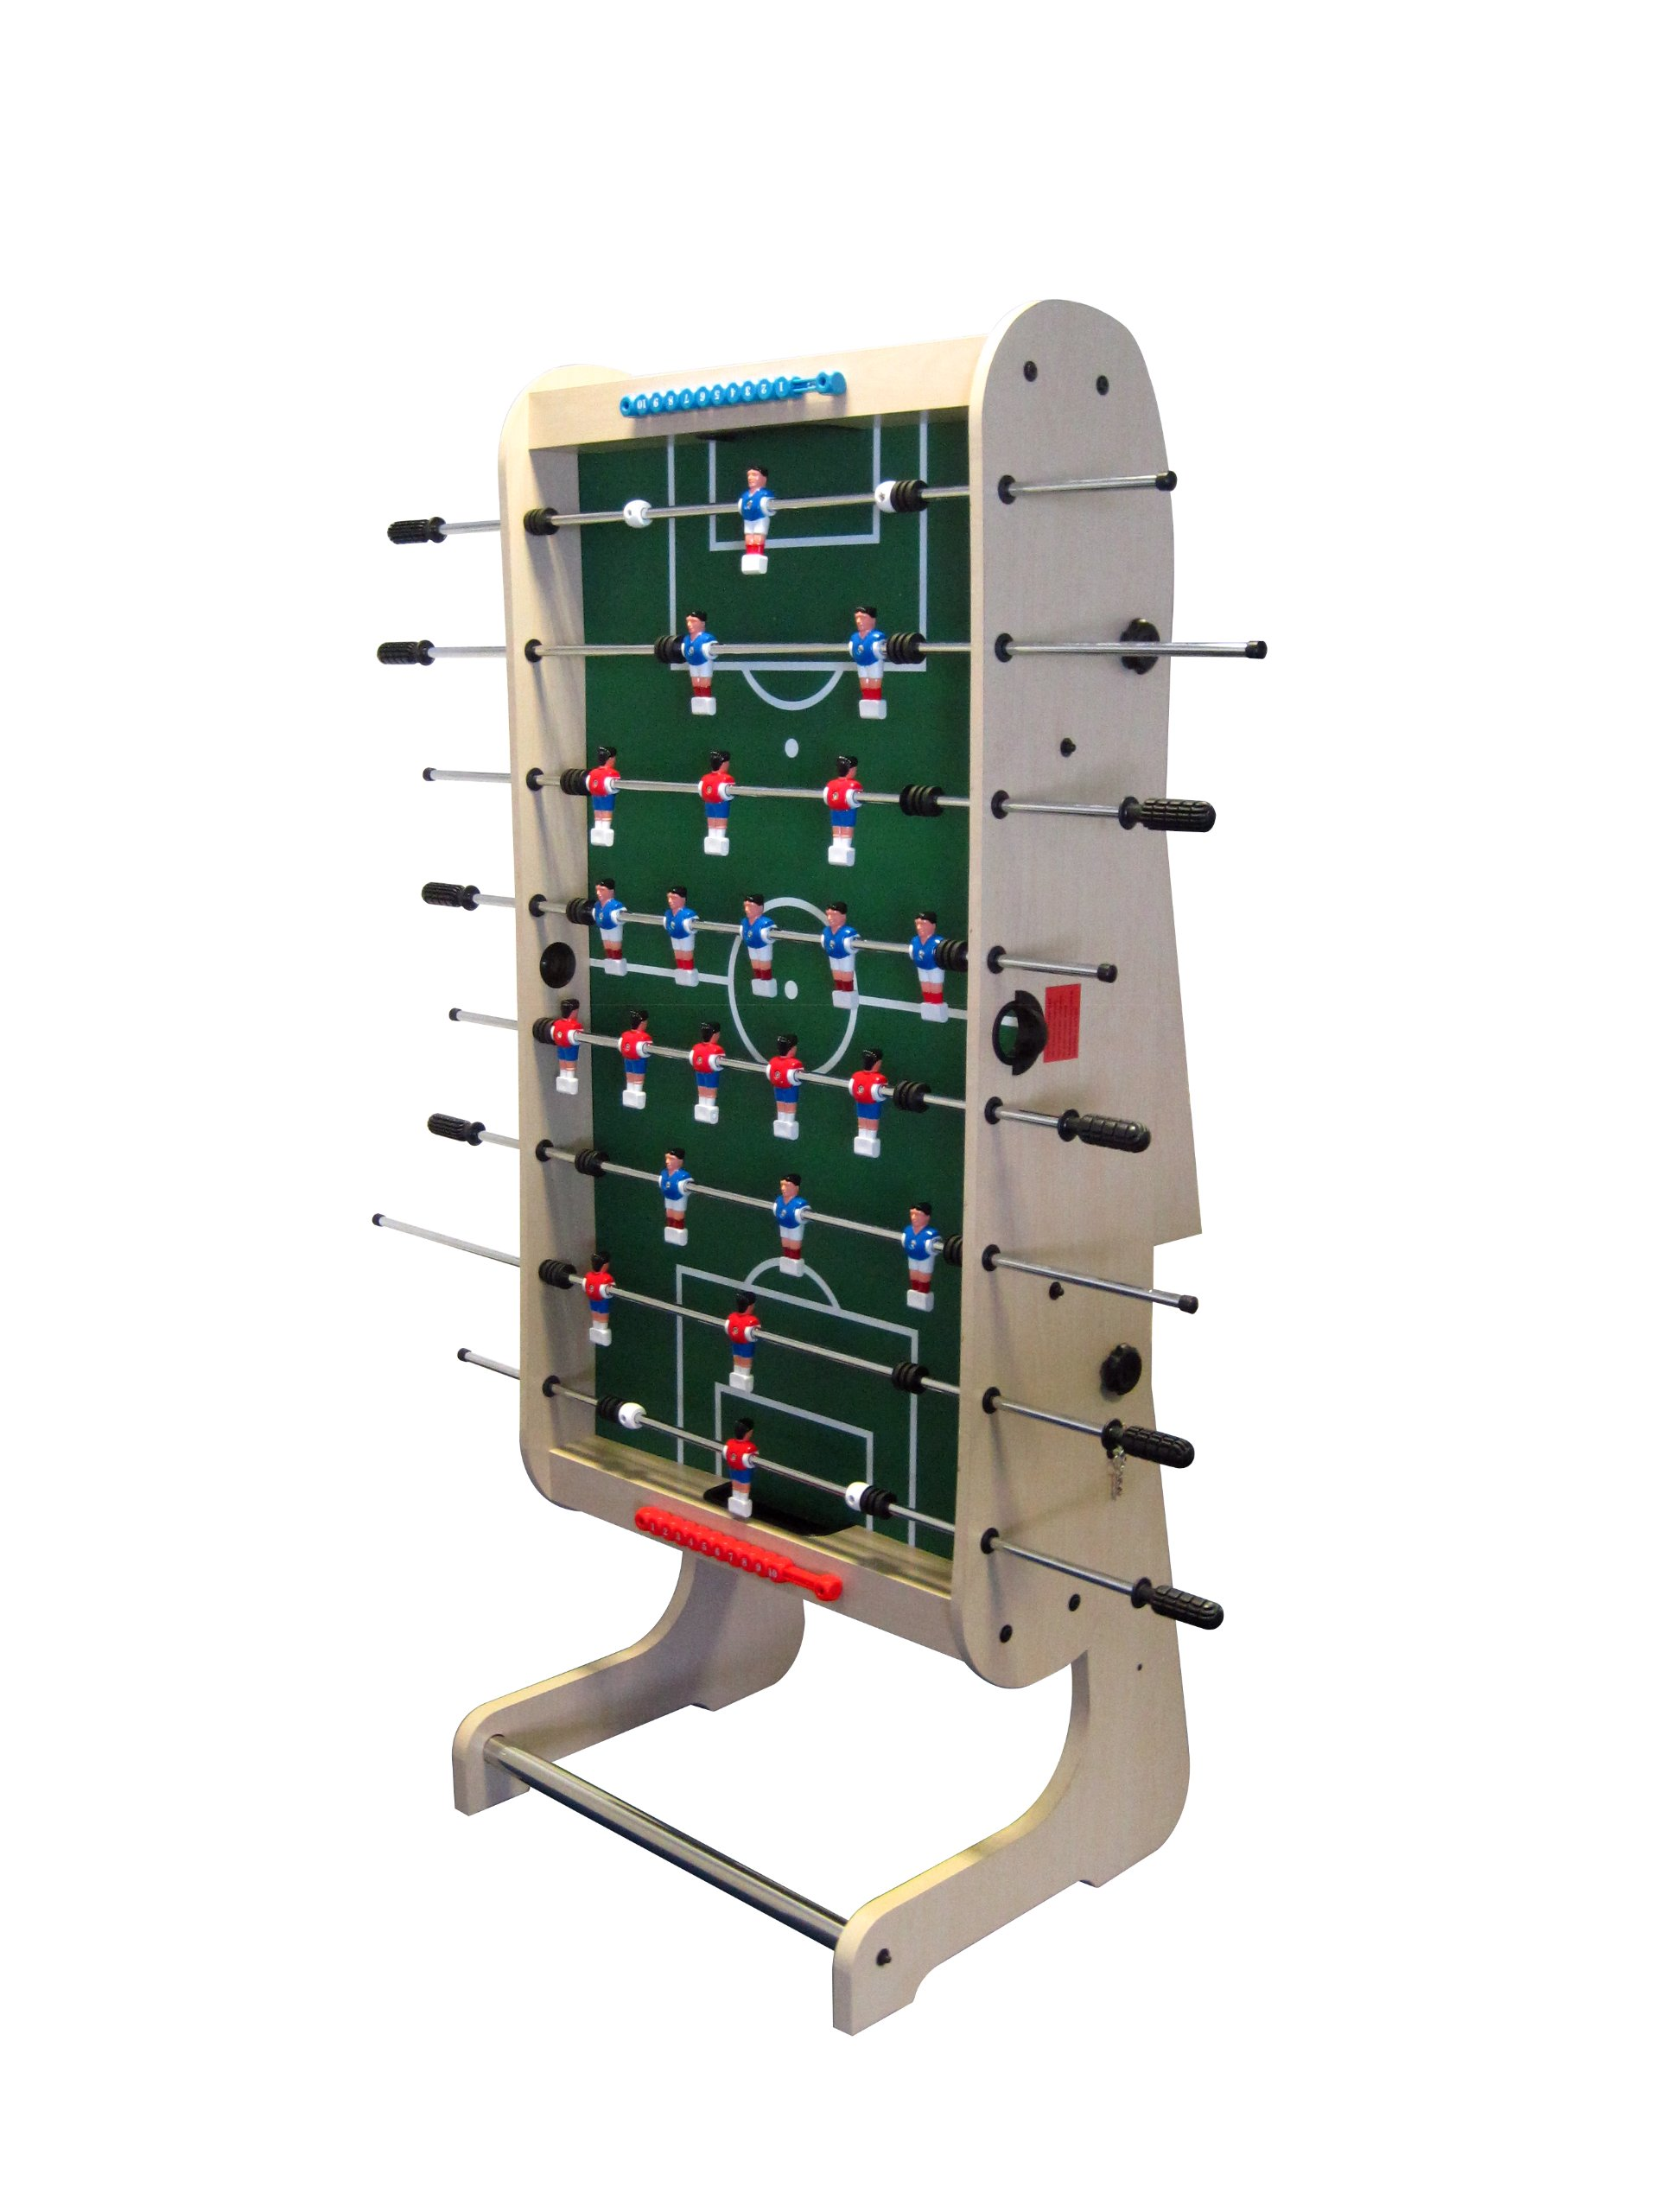 BCE Table Sports Riley Olympic Pro HFT-5N - Futbolín plegable (1,4 m): Amazon.es: Hogar